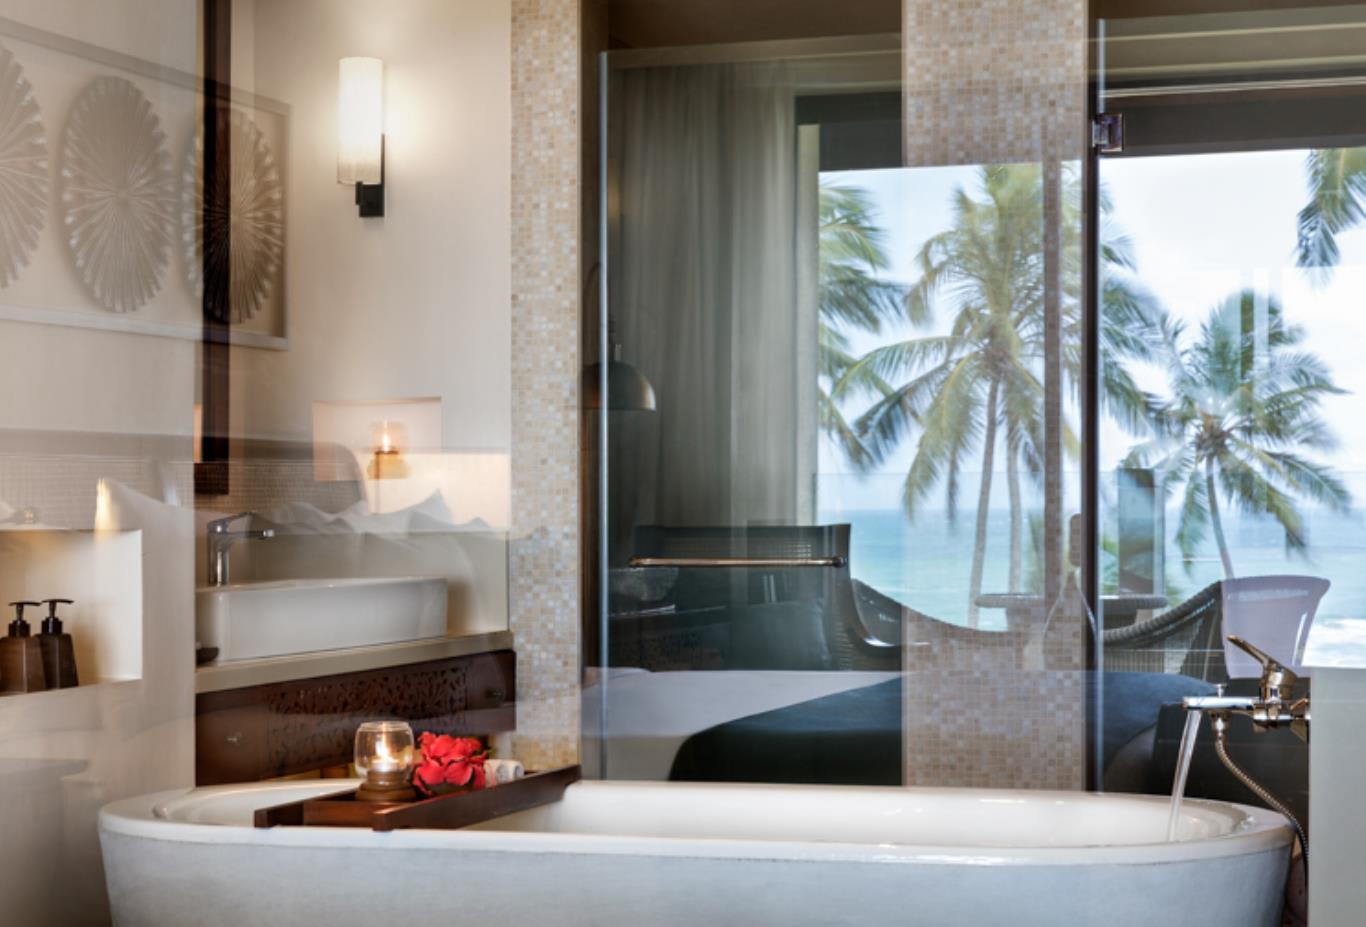 Premier Ocean View bathroom